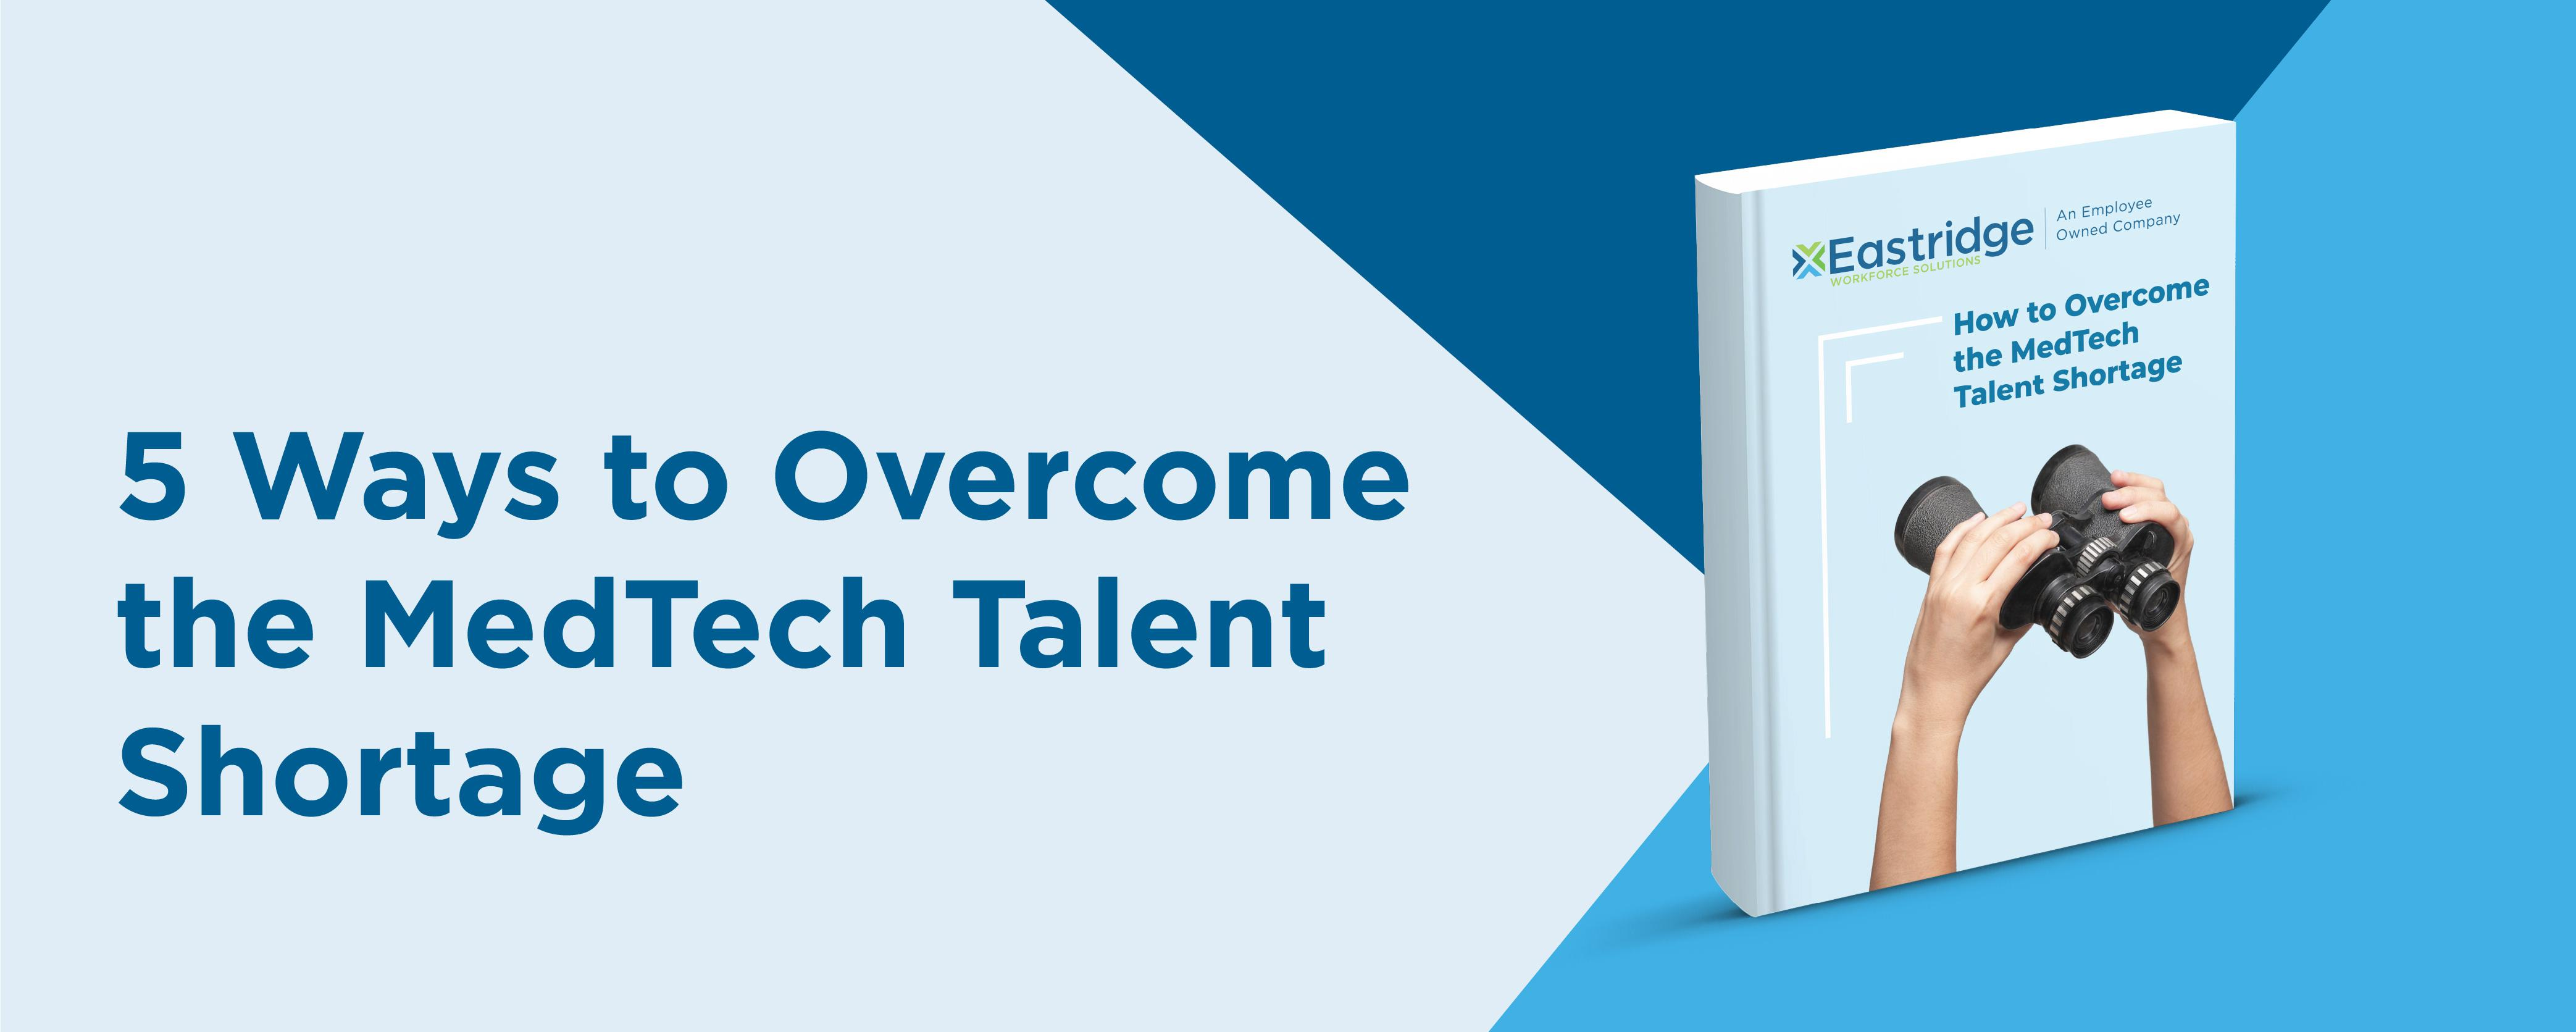 5 Ways to Overcome the MedTech Talent Shortage